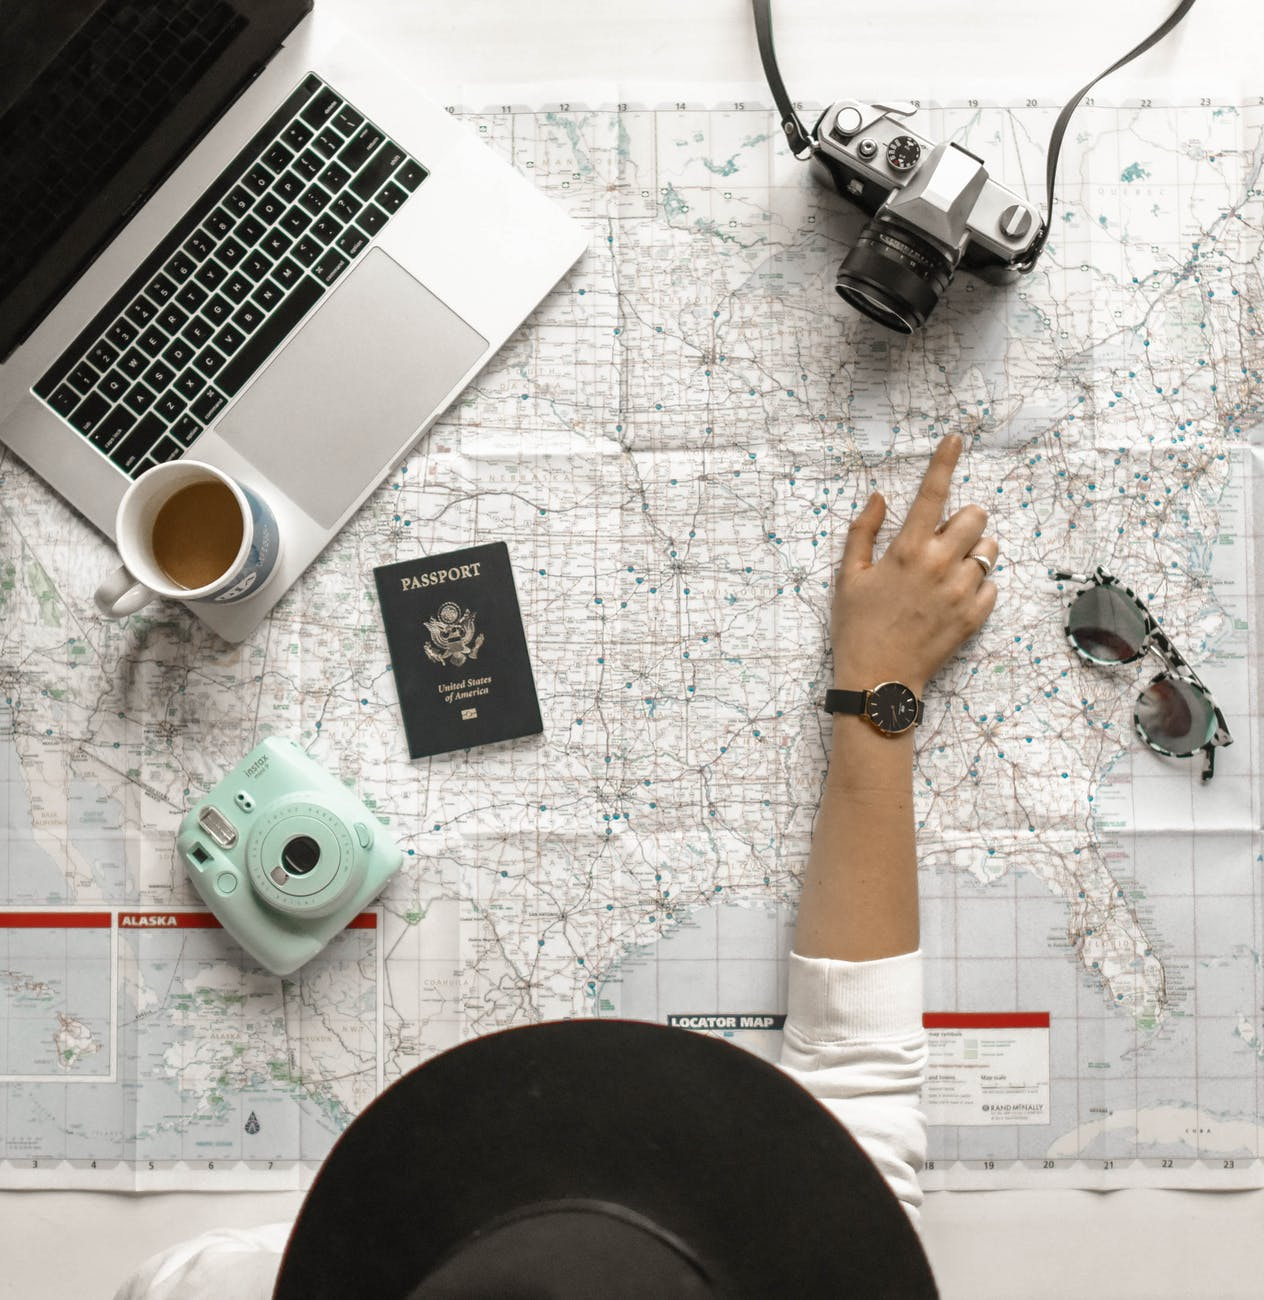 Travel Agency Near Me to Get the Best Tour Recommendations